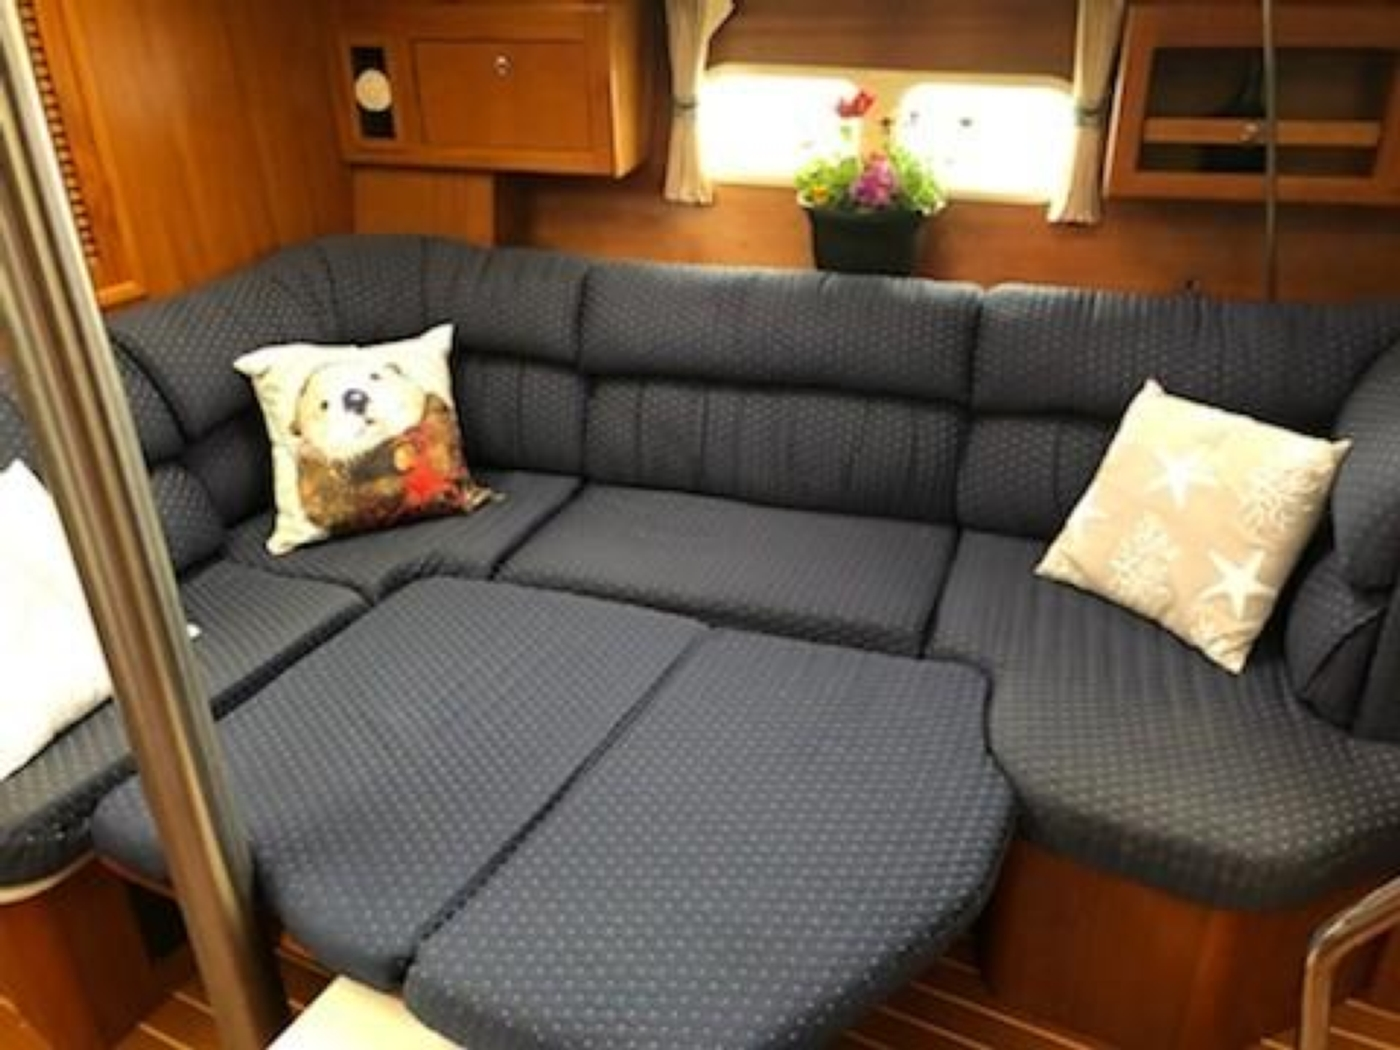 2004 Hunter Passage 420, Settee converts to double berth